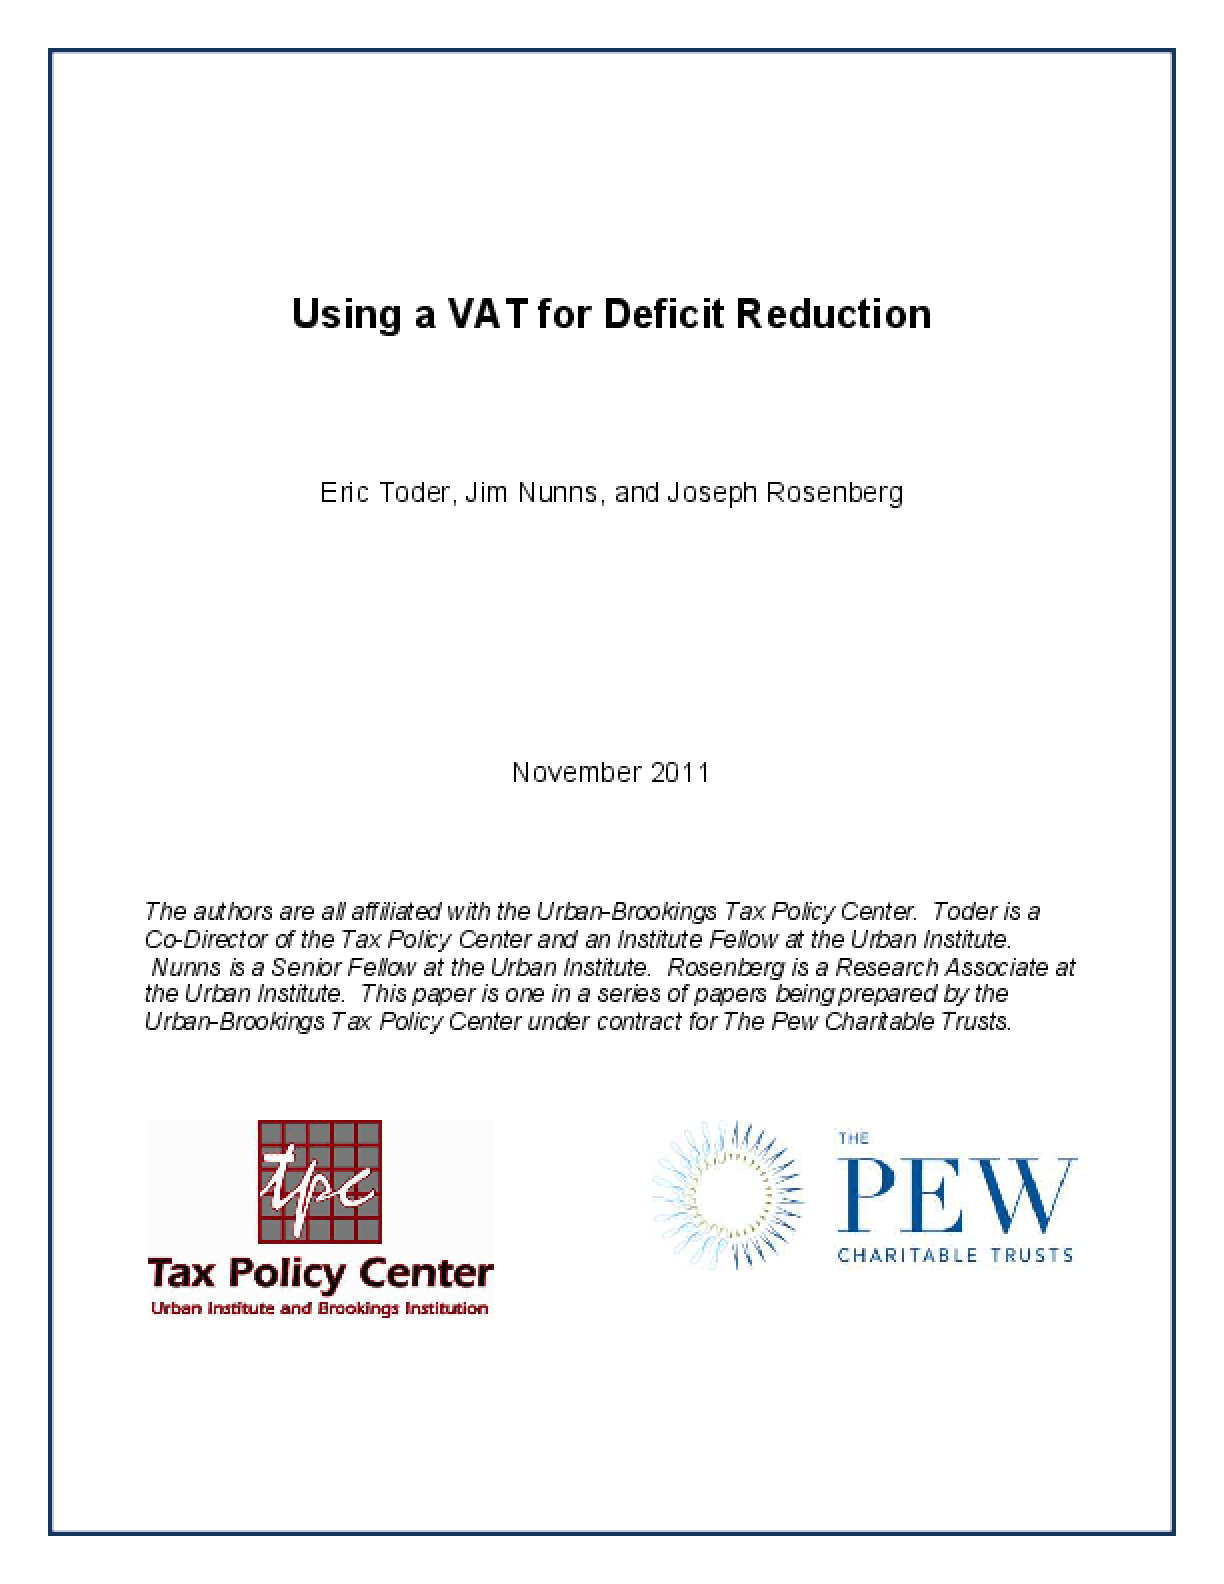 Using a VAT for Deficit Reduction